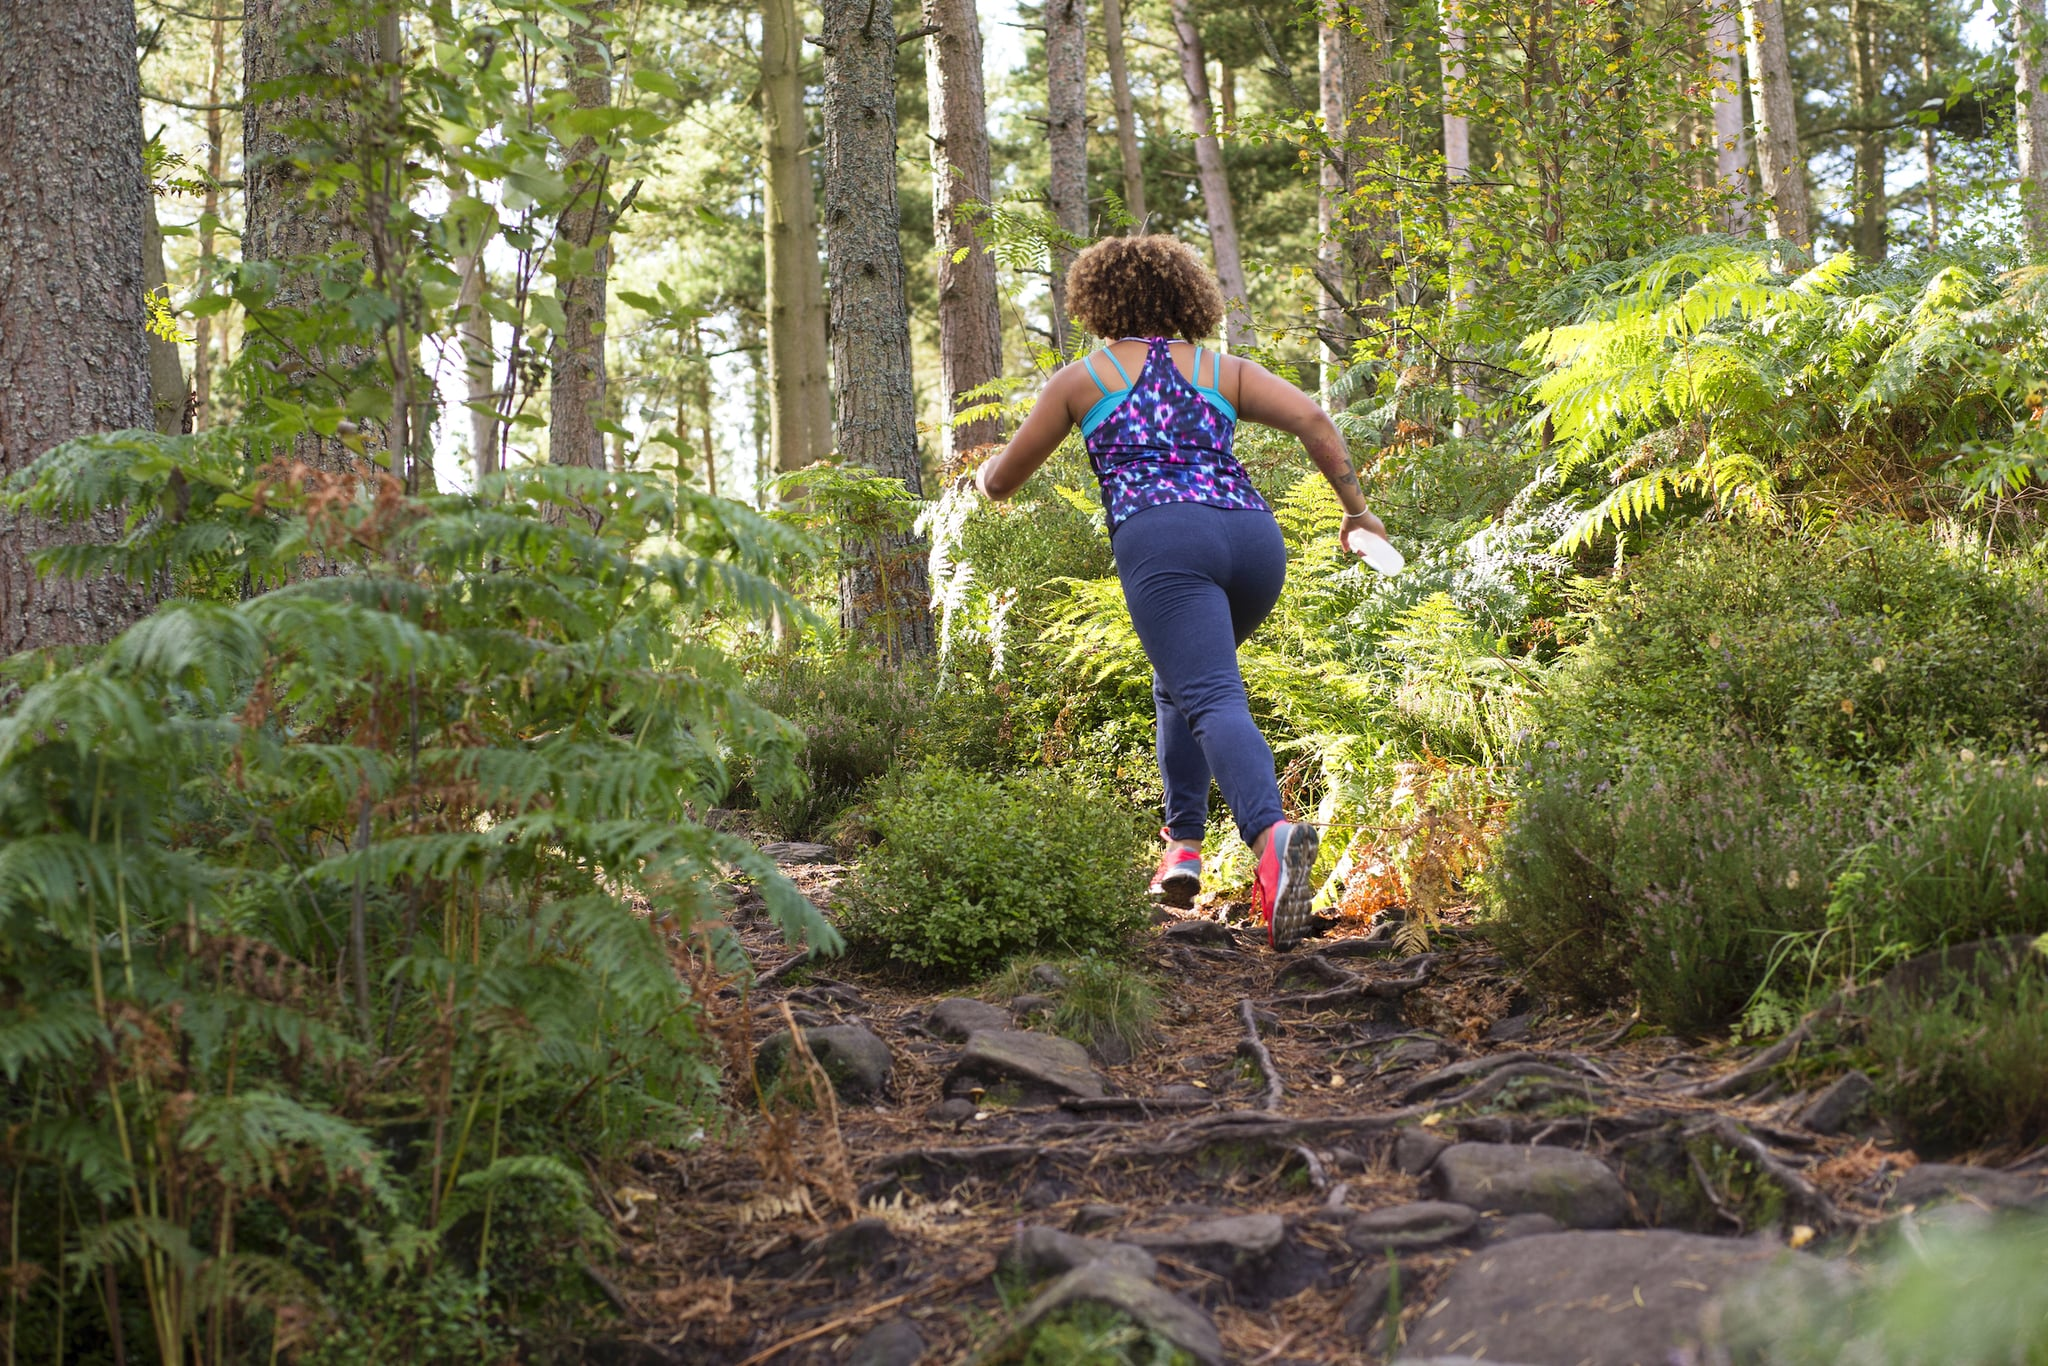 Rear view shot of a woman running through a forest across extreme terrain. She is wearing sportswear and is carrying a waterbottle.